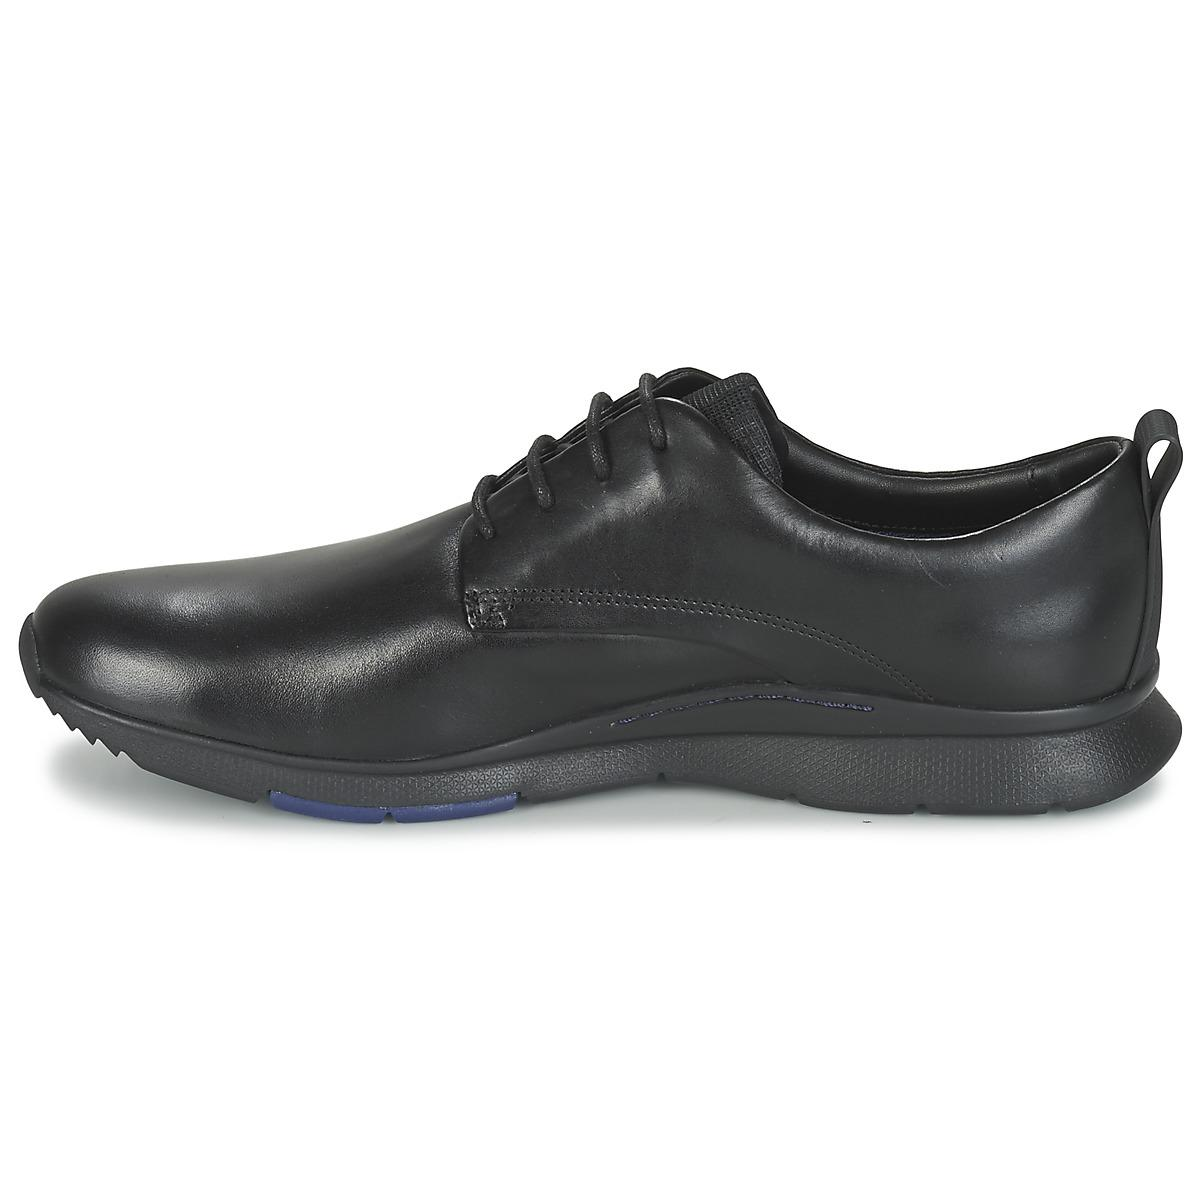 Clarks Leather Tynamo Walk Shoes (trainers) in Black for Men